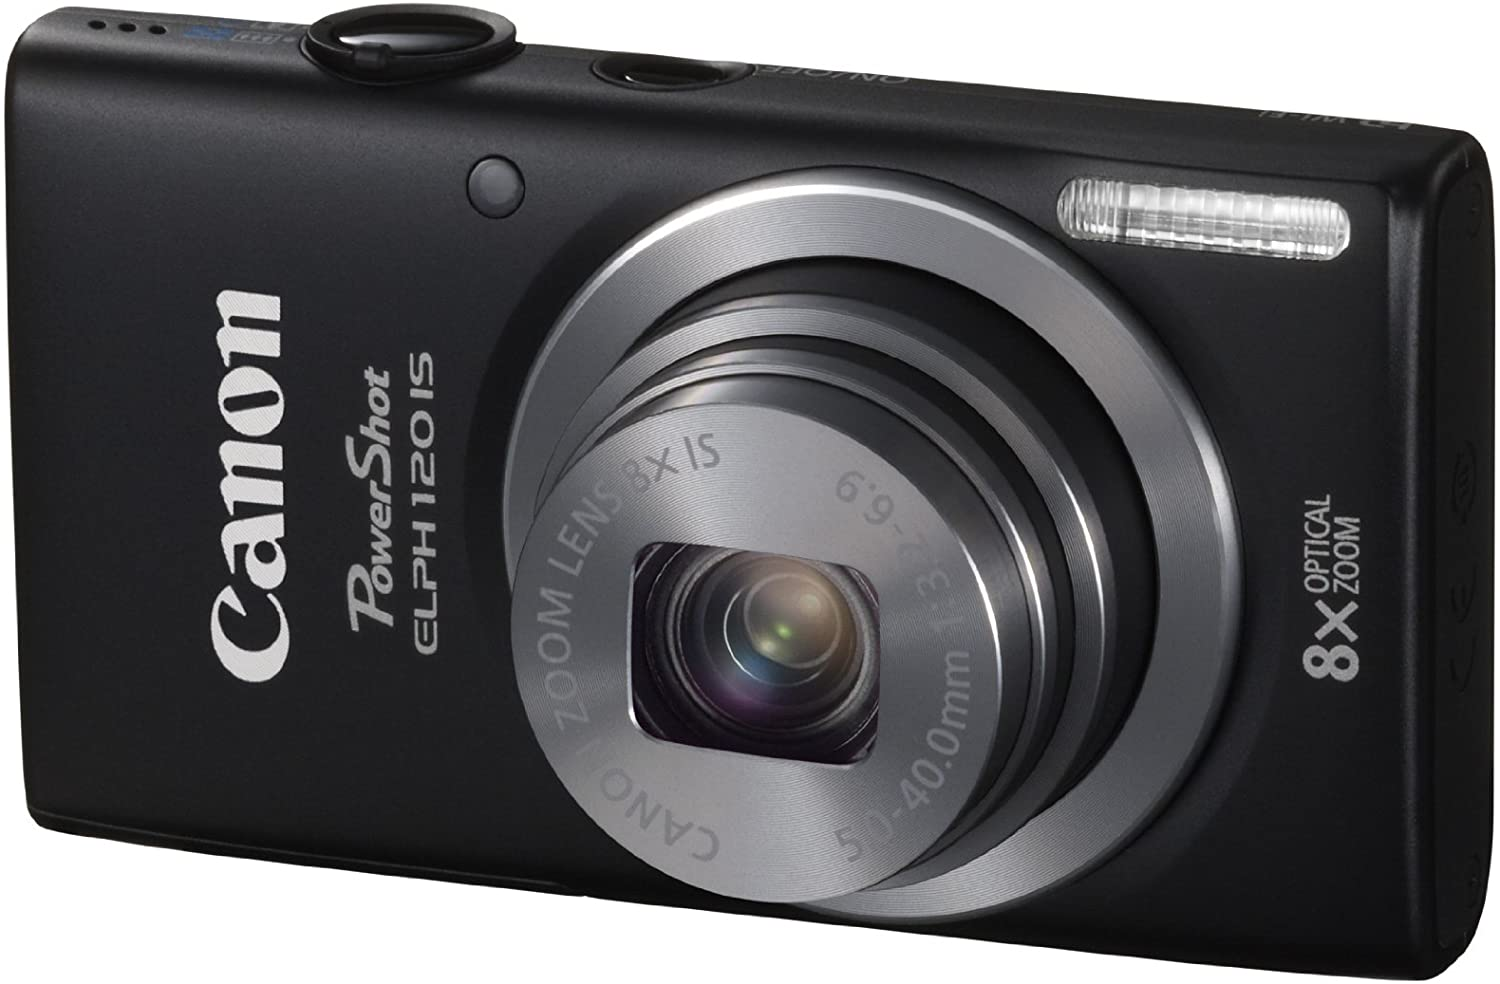 Canon PowerShot ELPH 120 IS Camera